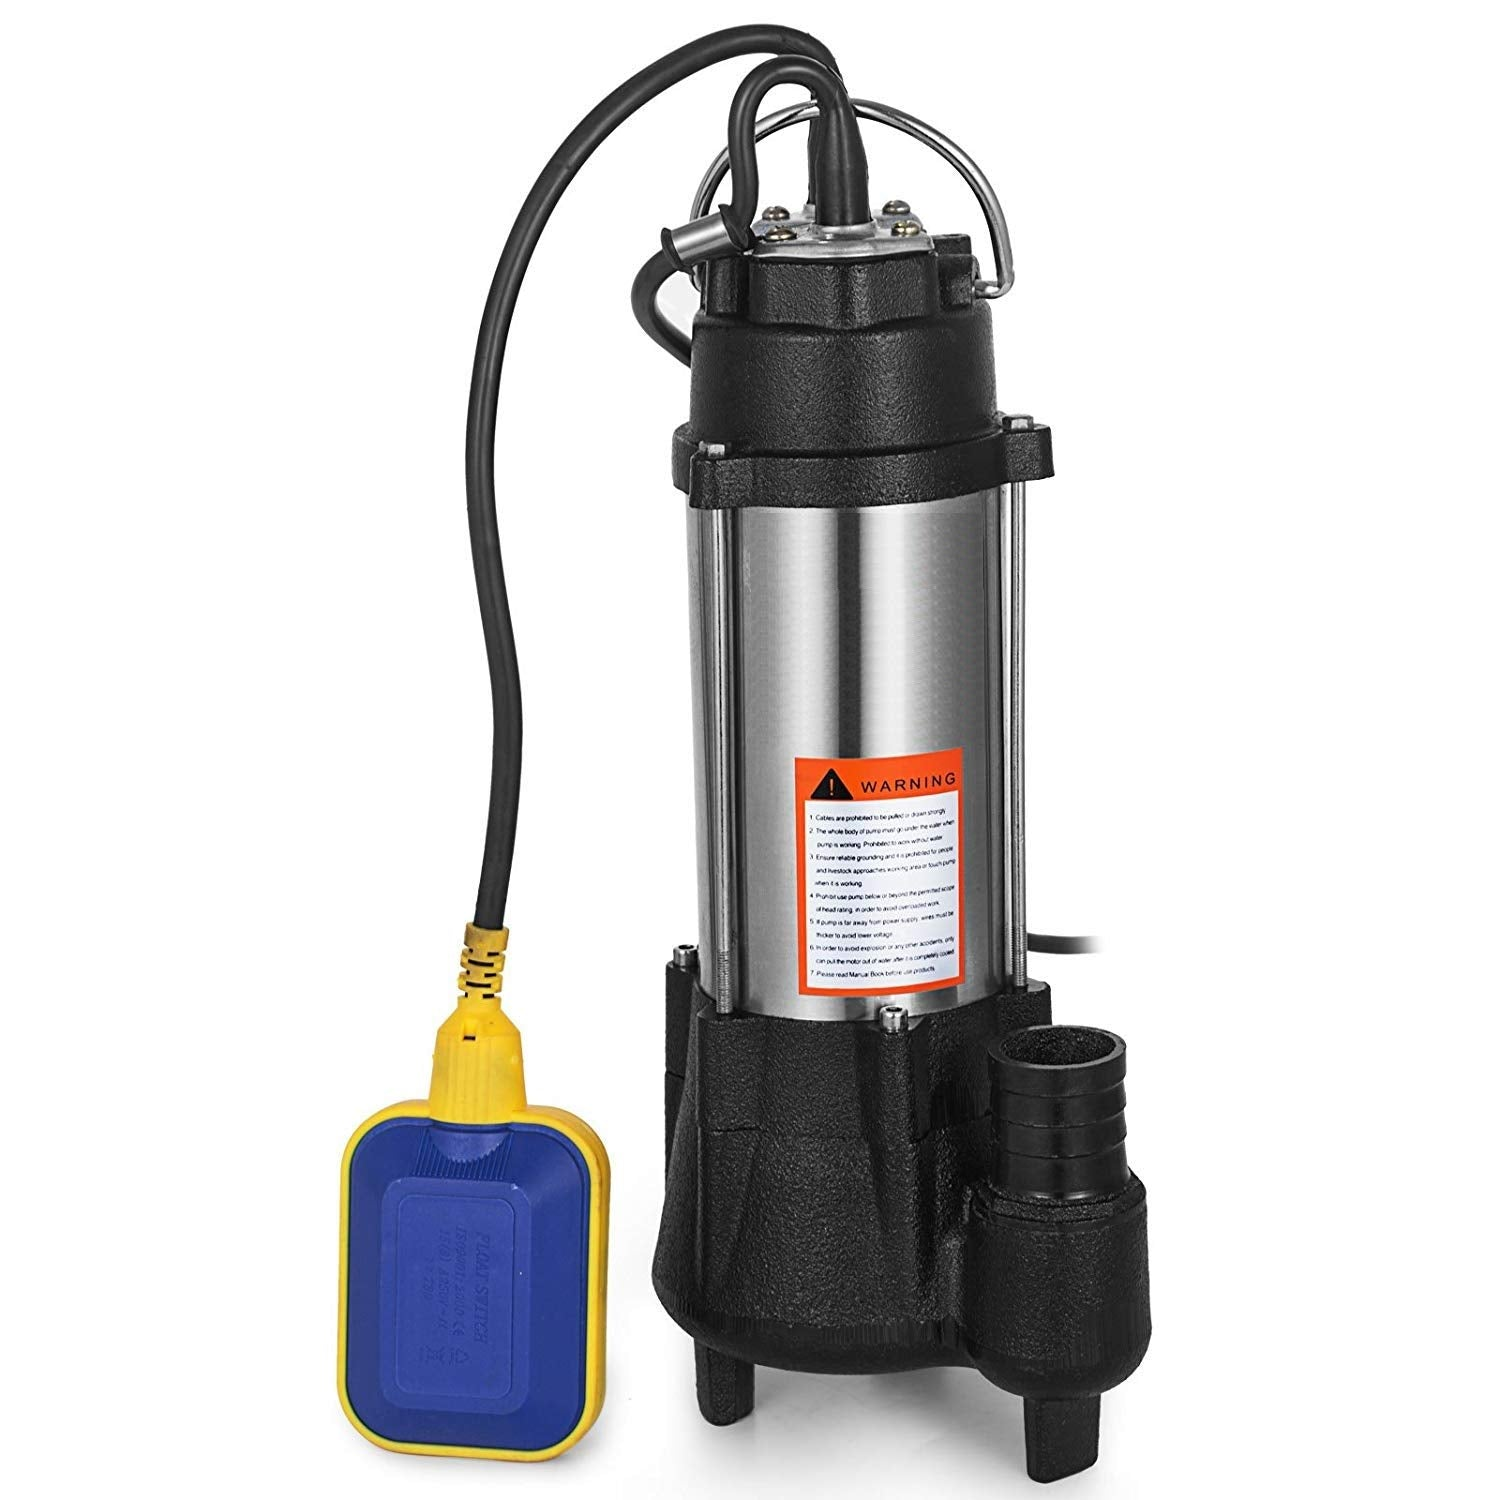 Submersible Heavy Duty Cast steel Sewage Pump 0 5HP Electric Removal for  Clean Dirty Water Transfer With 20FT Cable & Plug